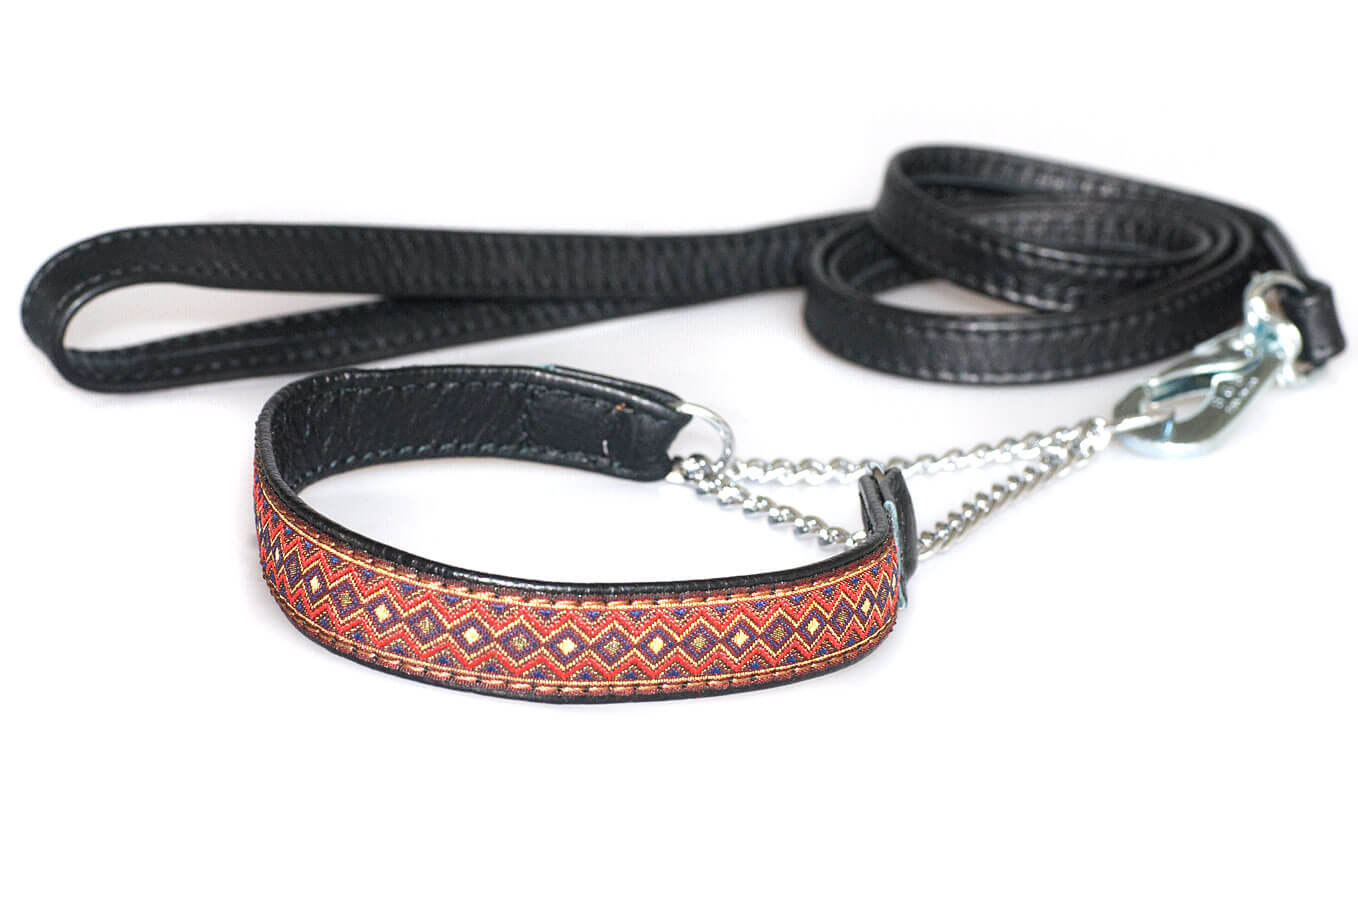 Black nappa leather double stitched lead to match ribbon collars